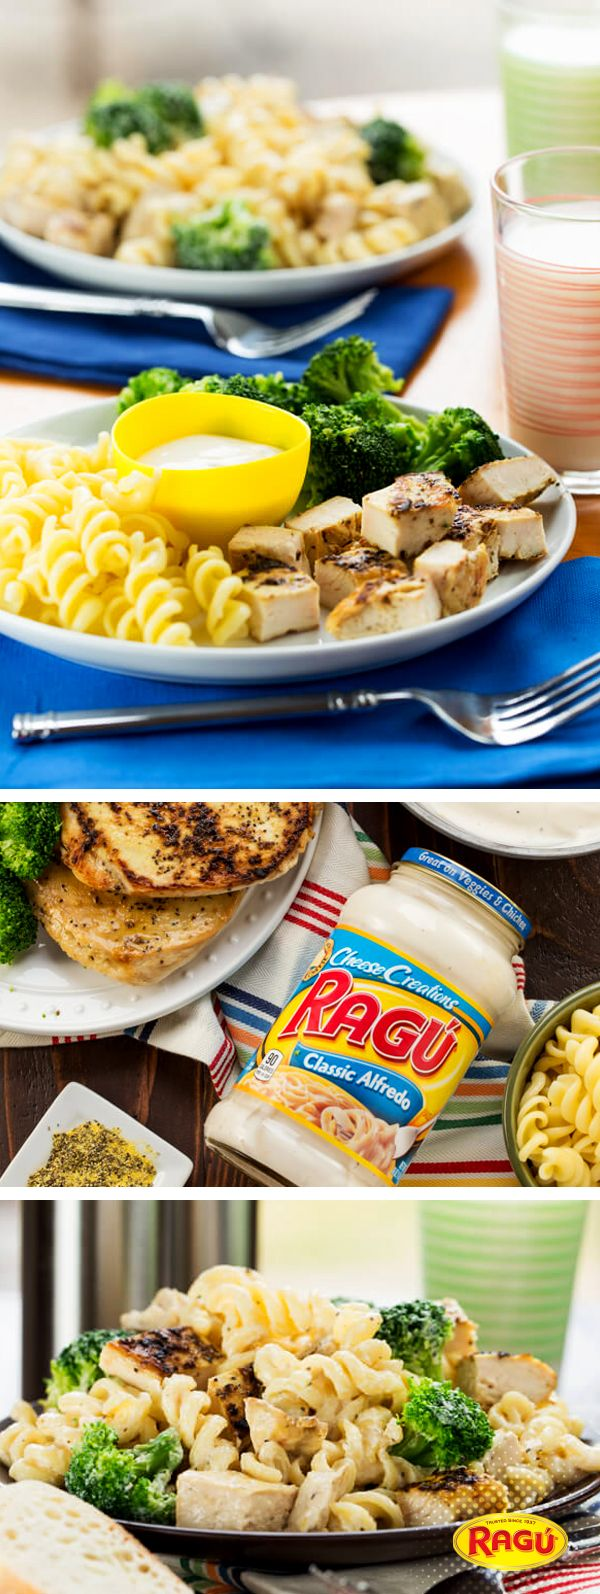 A zesty twist to a classic! Garnish With Lemon gives a citrus kick to her Lemon Chicken and Broccoli Alfredo recipe. They use Ragú Classic Alfredo with savory spiral noodles. Cook and serve in under 30 mins! #saucesome